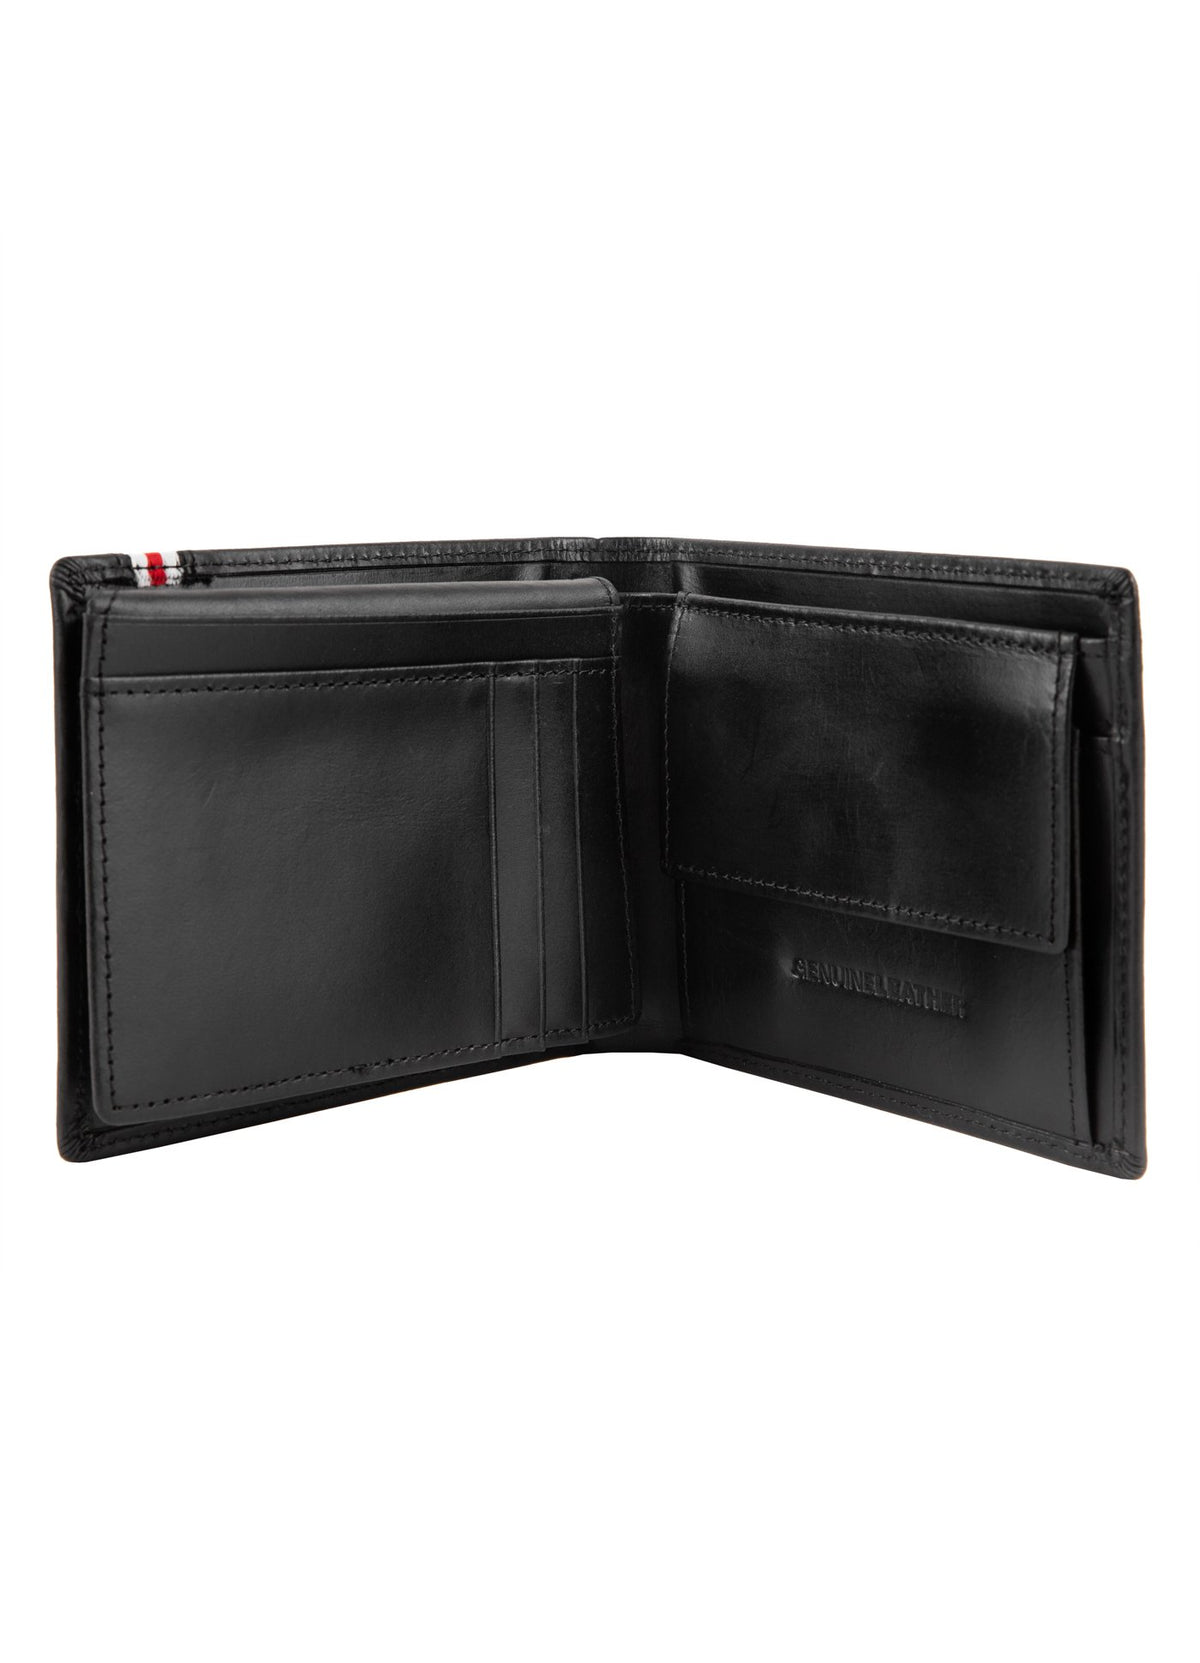 LEATHER WALLET LIN WOOD Black